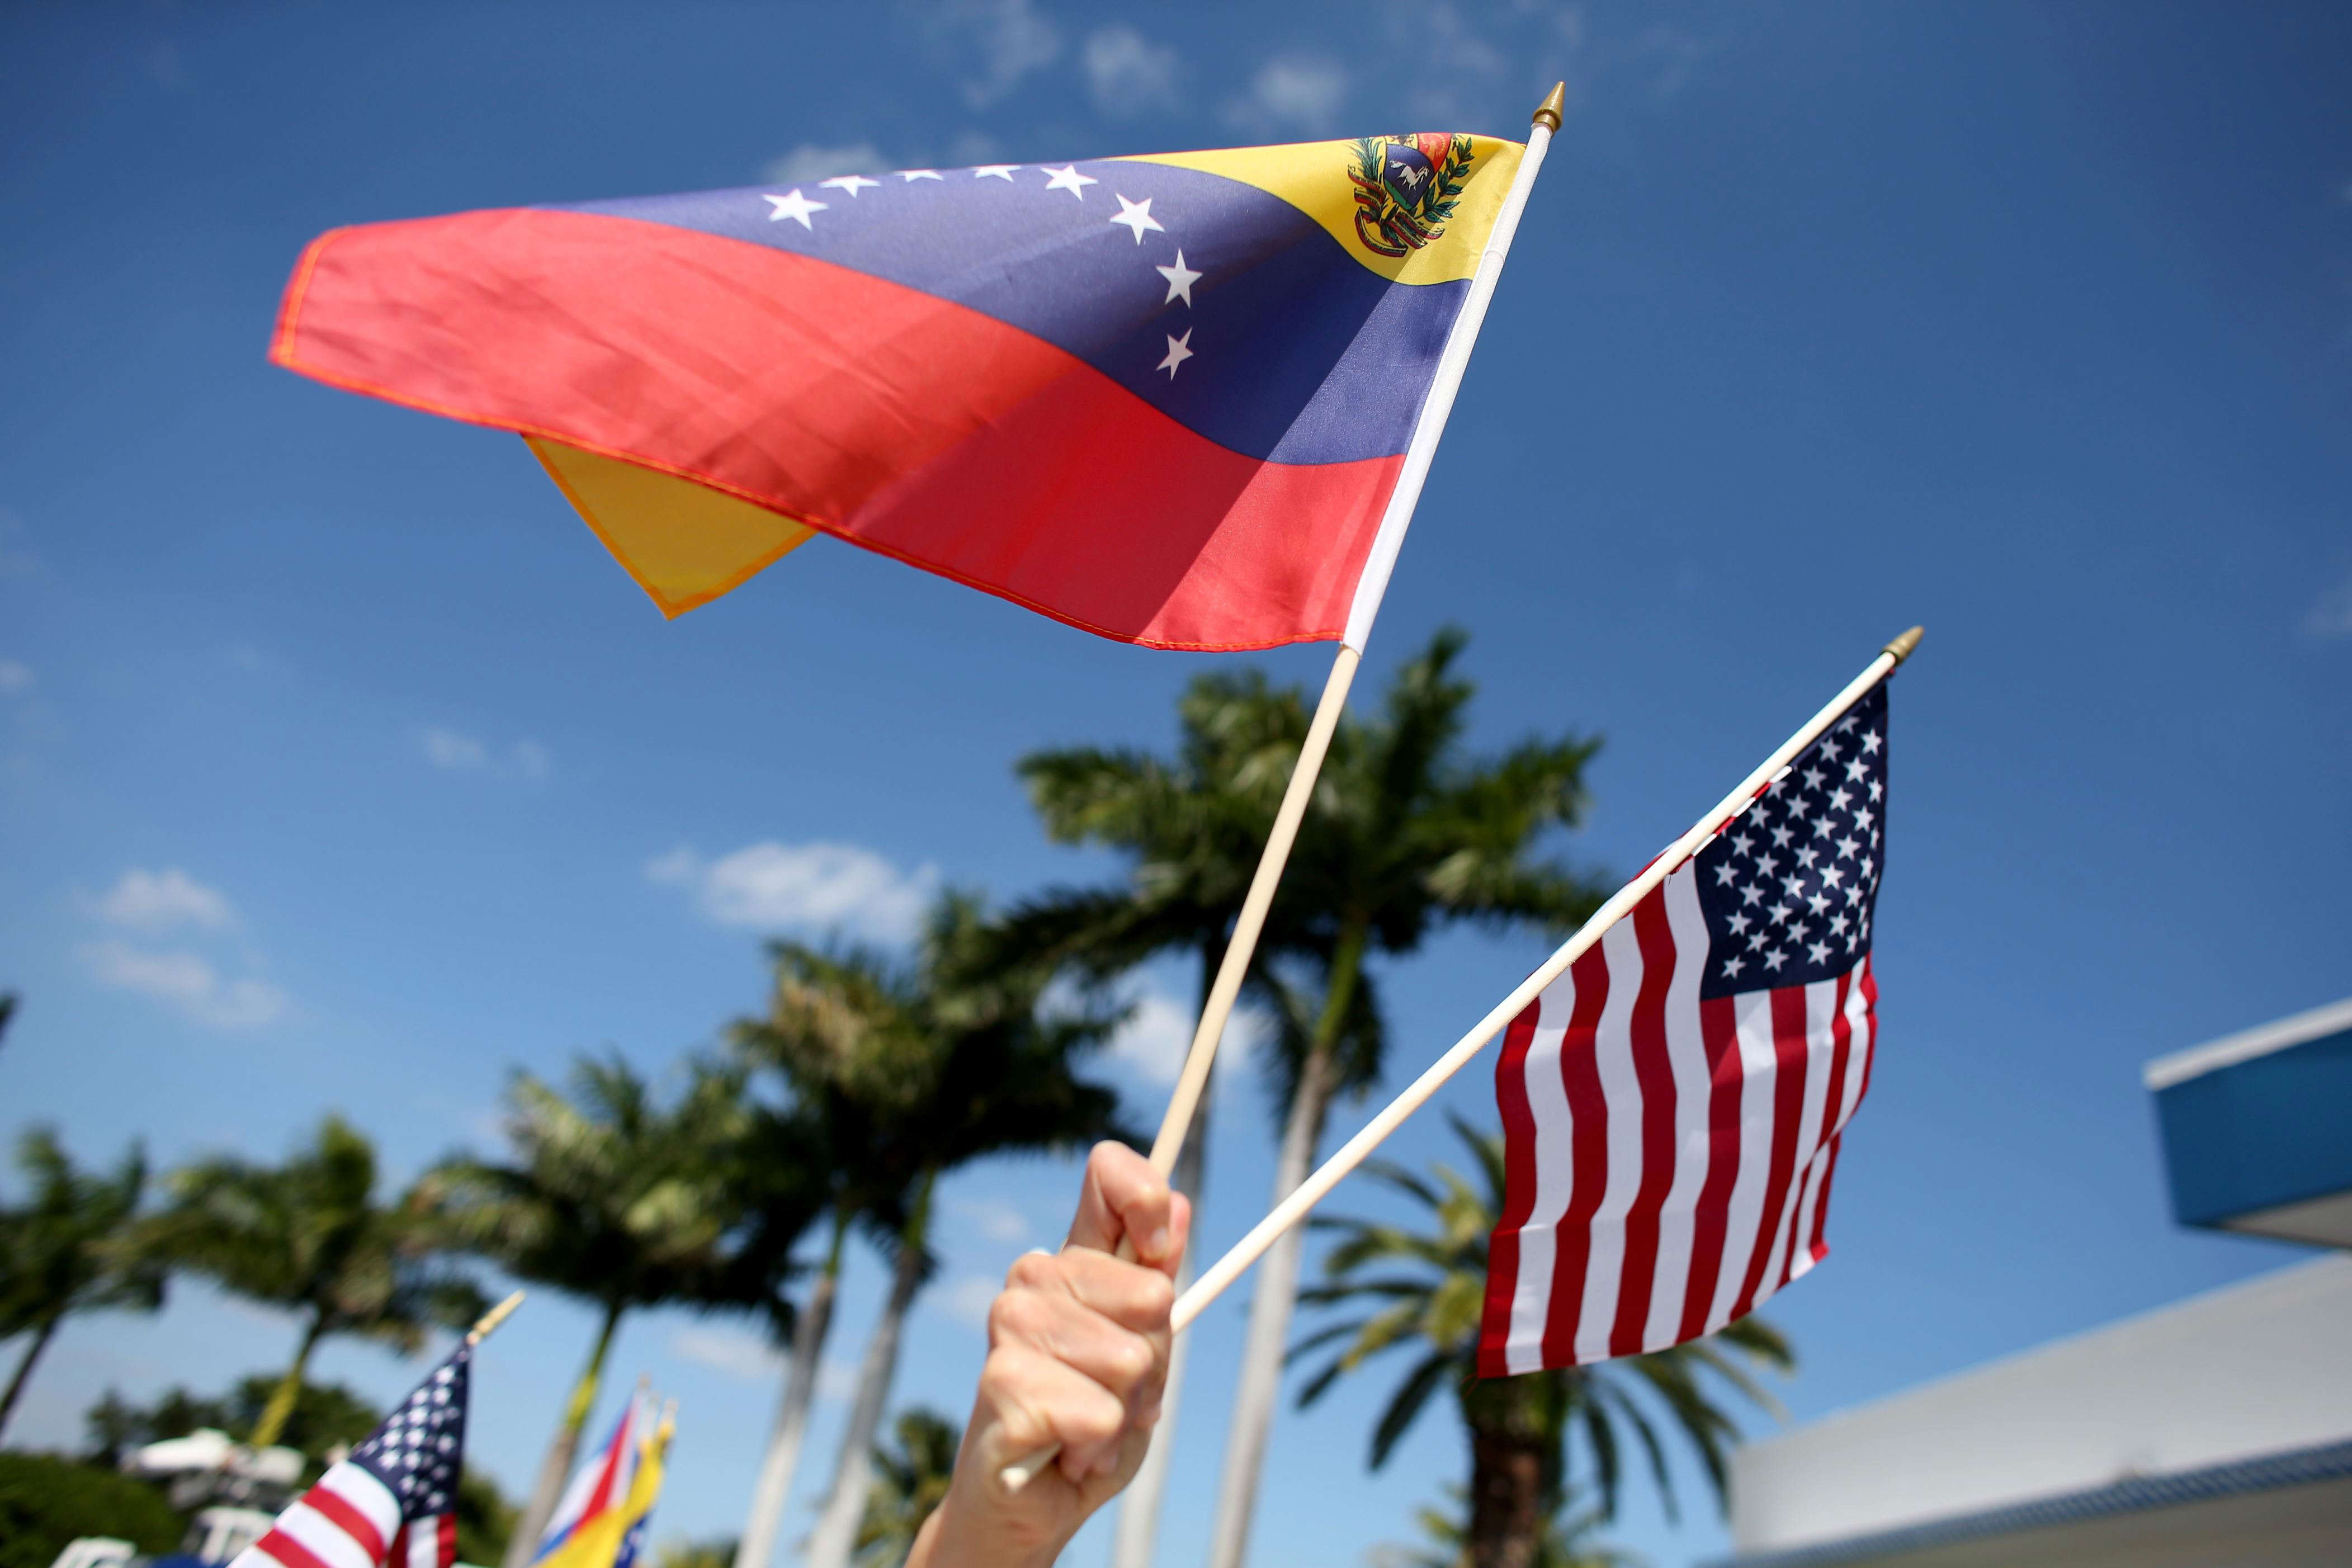 Slide 5 of 35: MIAMI, FL - MARCH 01:  A protester holds a Venezuelan and American flag as she and other Venezuelans and their supporters show their support for the anti-government protests in Venezuela on March 1, 2014 in Miami, Florida. In Venezuela, protests over the past couple of weeks have resulted in violence as government opponents and supporters have faced off in the streets.  (Photo by Joe Raedle/Getty Images)